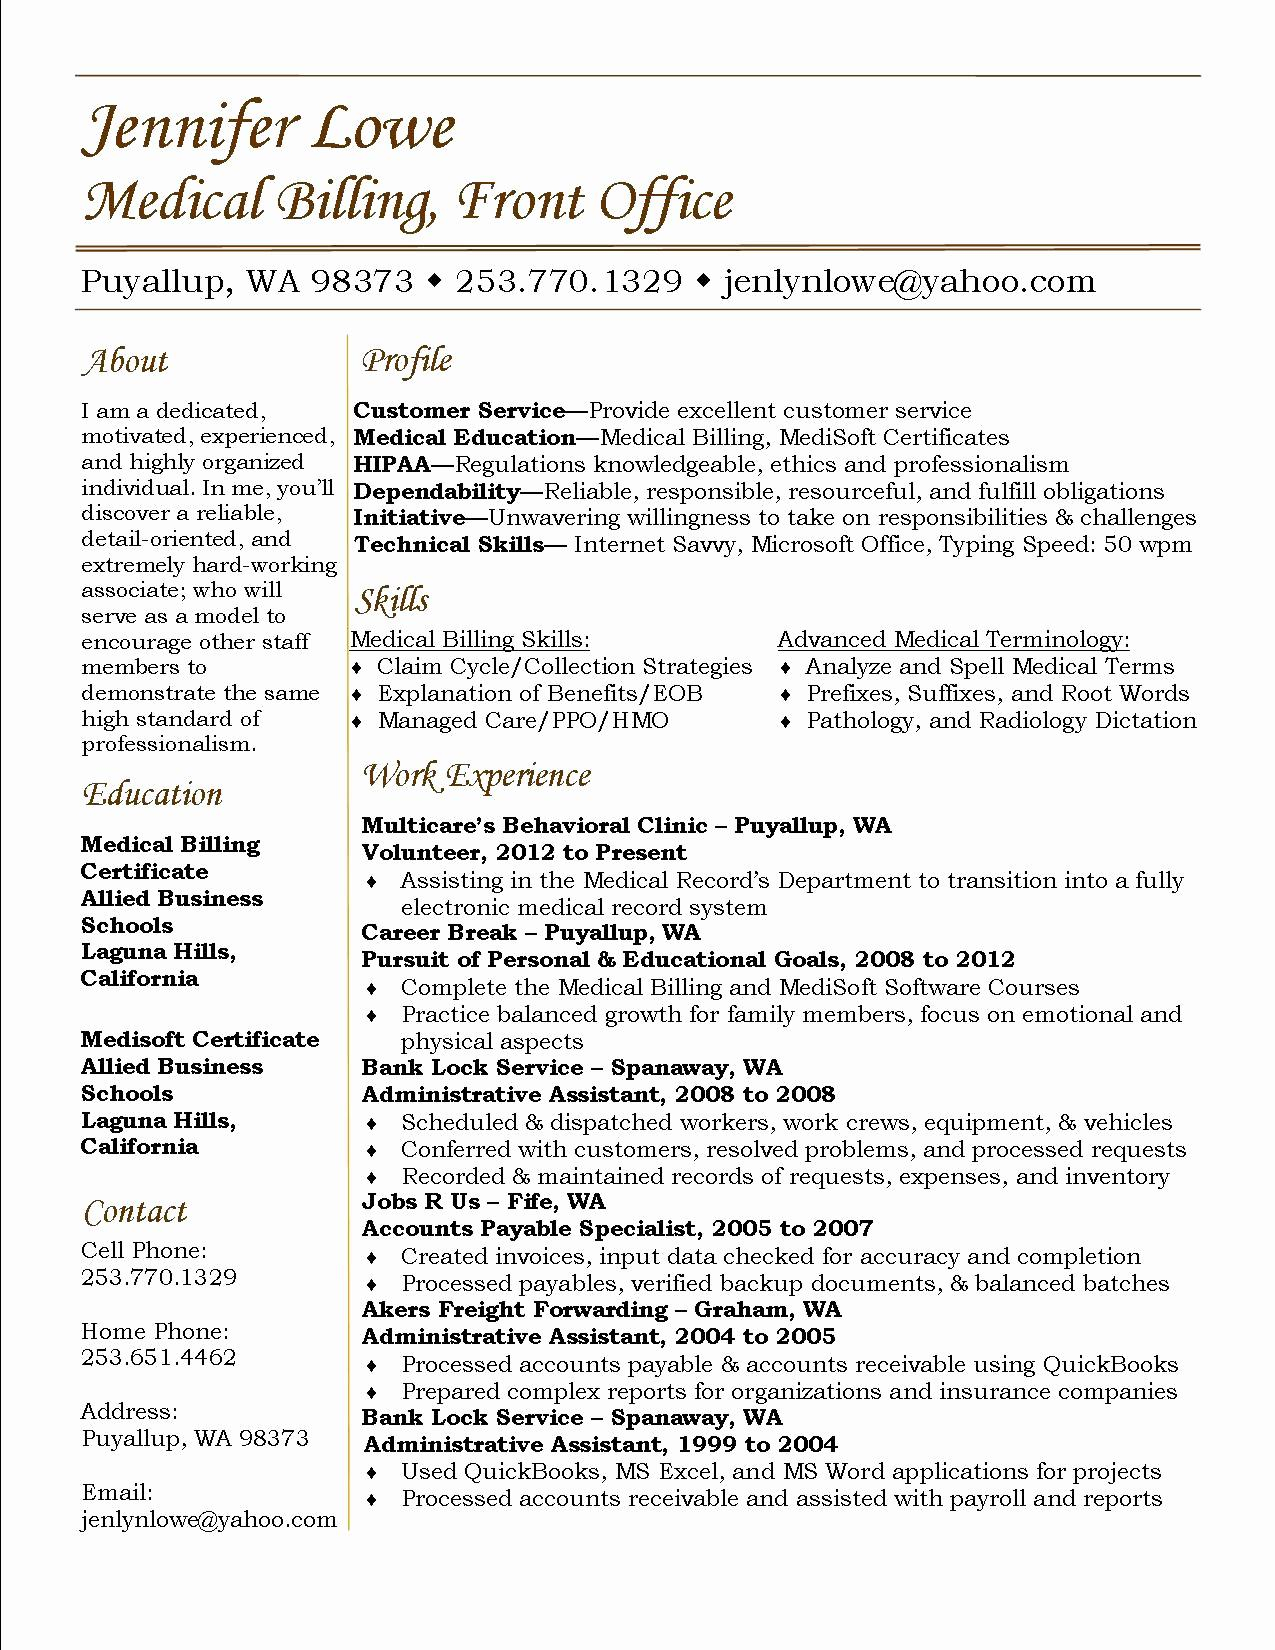 Medical Biller Resume Template - Medical Coding Resume Samples Unique Charming Ideas Medical Coder